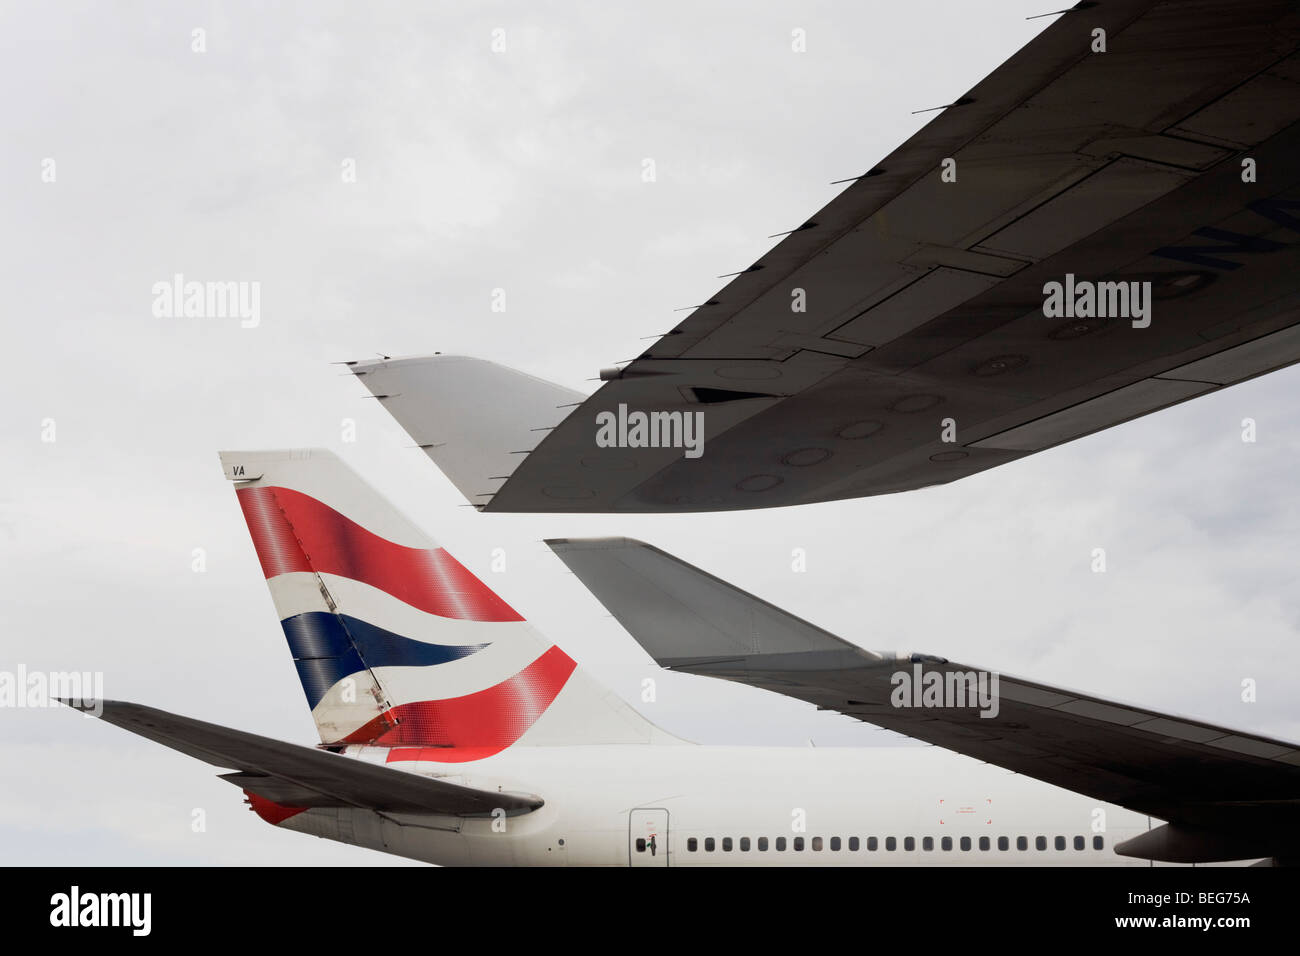 Wing tips and tail from British Airways 747 airliners are almost touching during their turnarounds while on apron - Stock Image